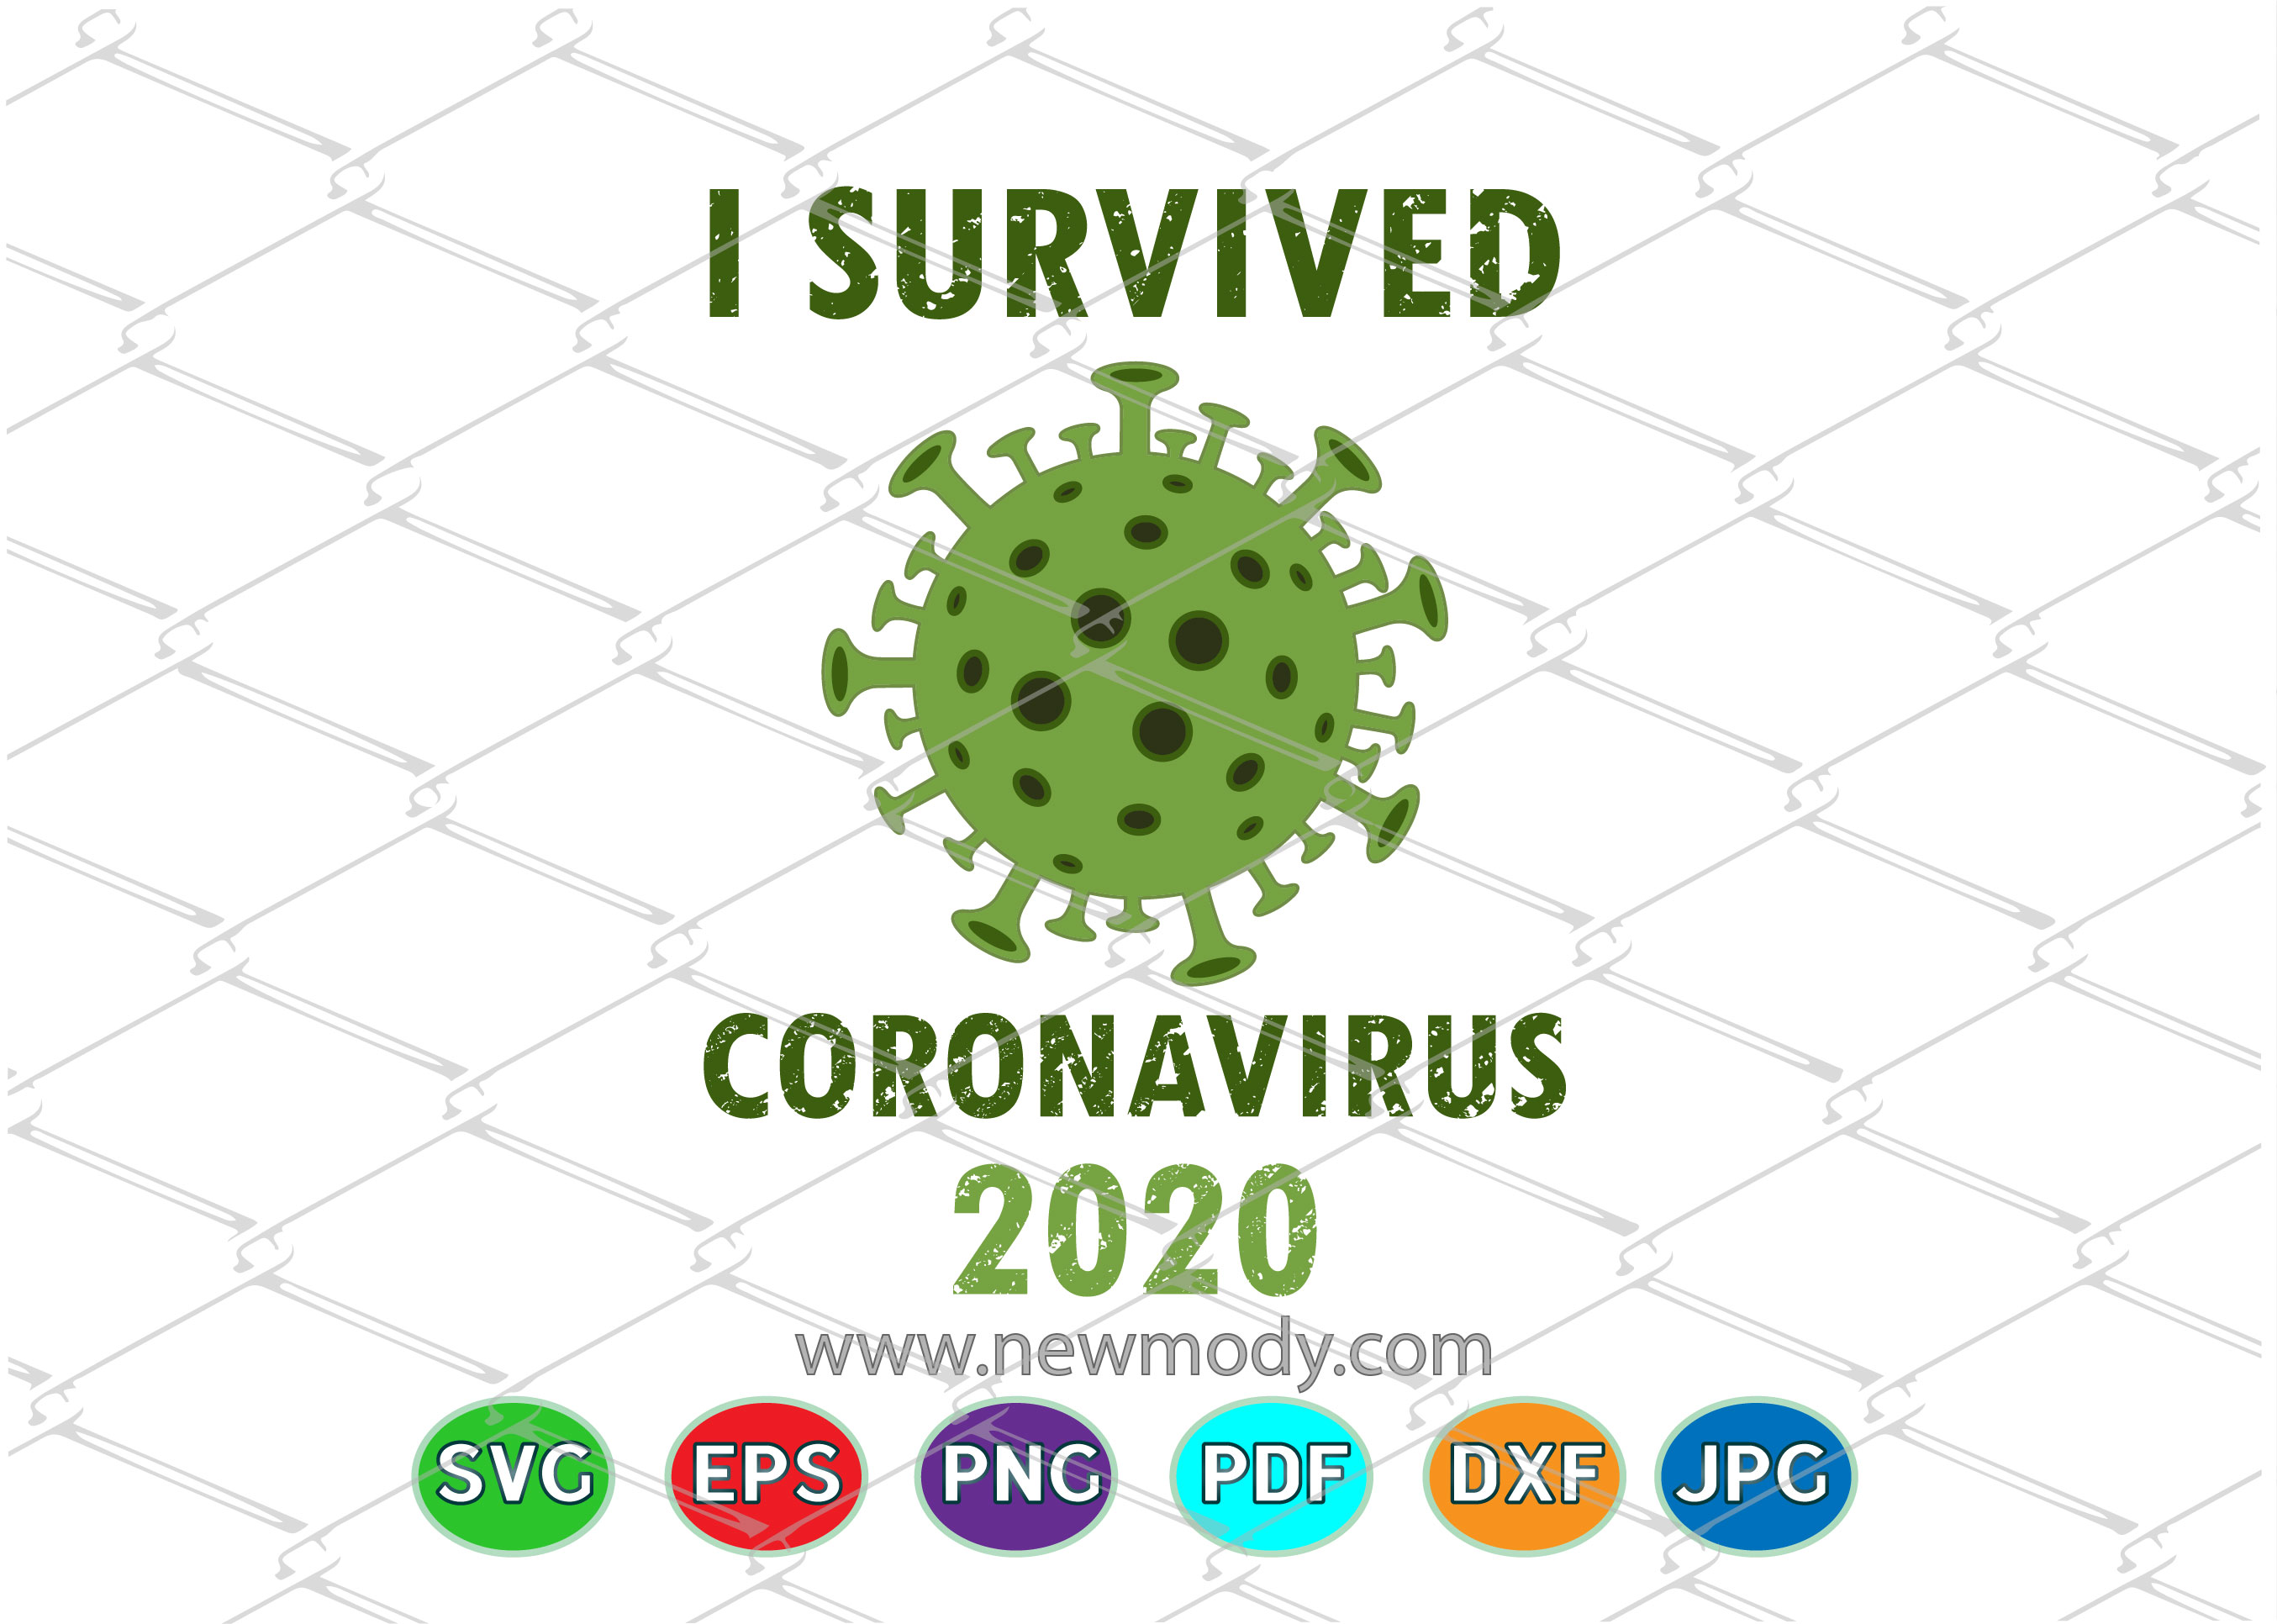 I Survived Coronavirus 2020 Graphic By Amitta Creative Fabrica